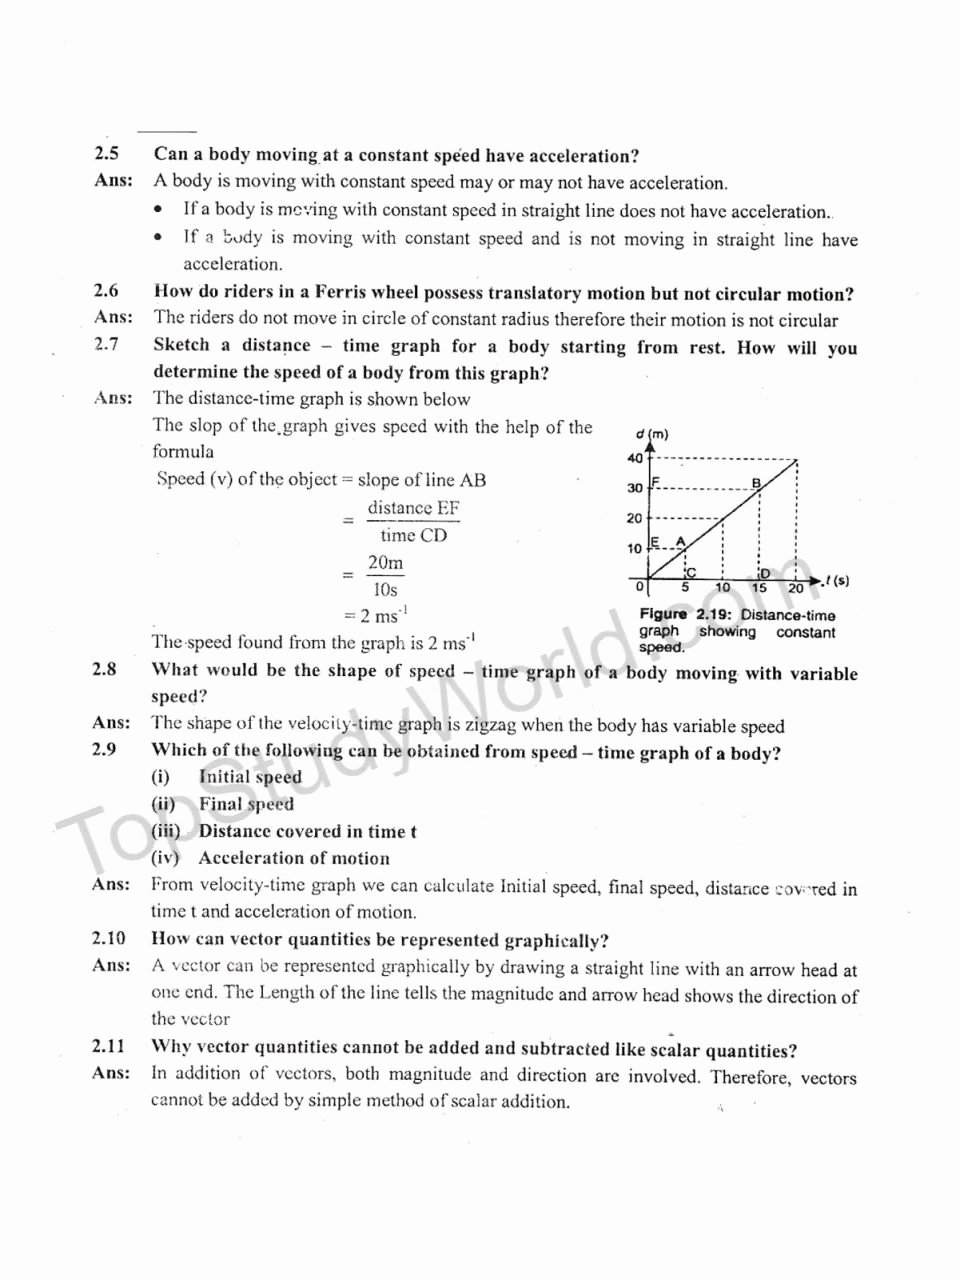 Velocity and Acceleration Calculation Worksheet Best Of Velocity and Acceleration Calculation Worksheet Answer Key